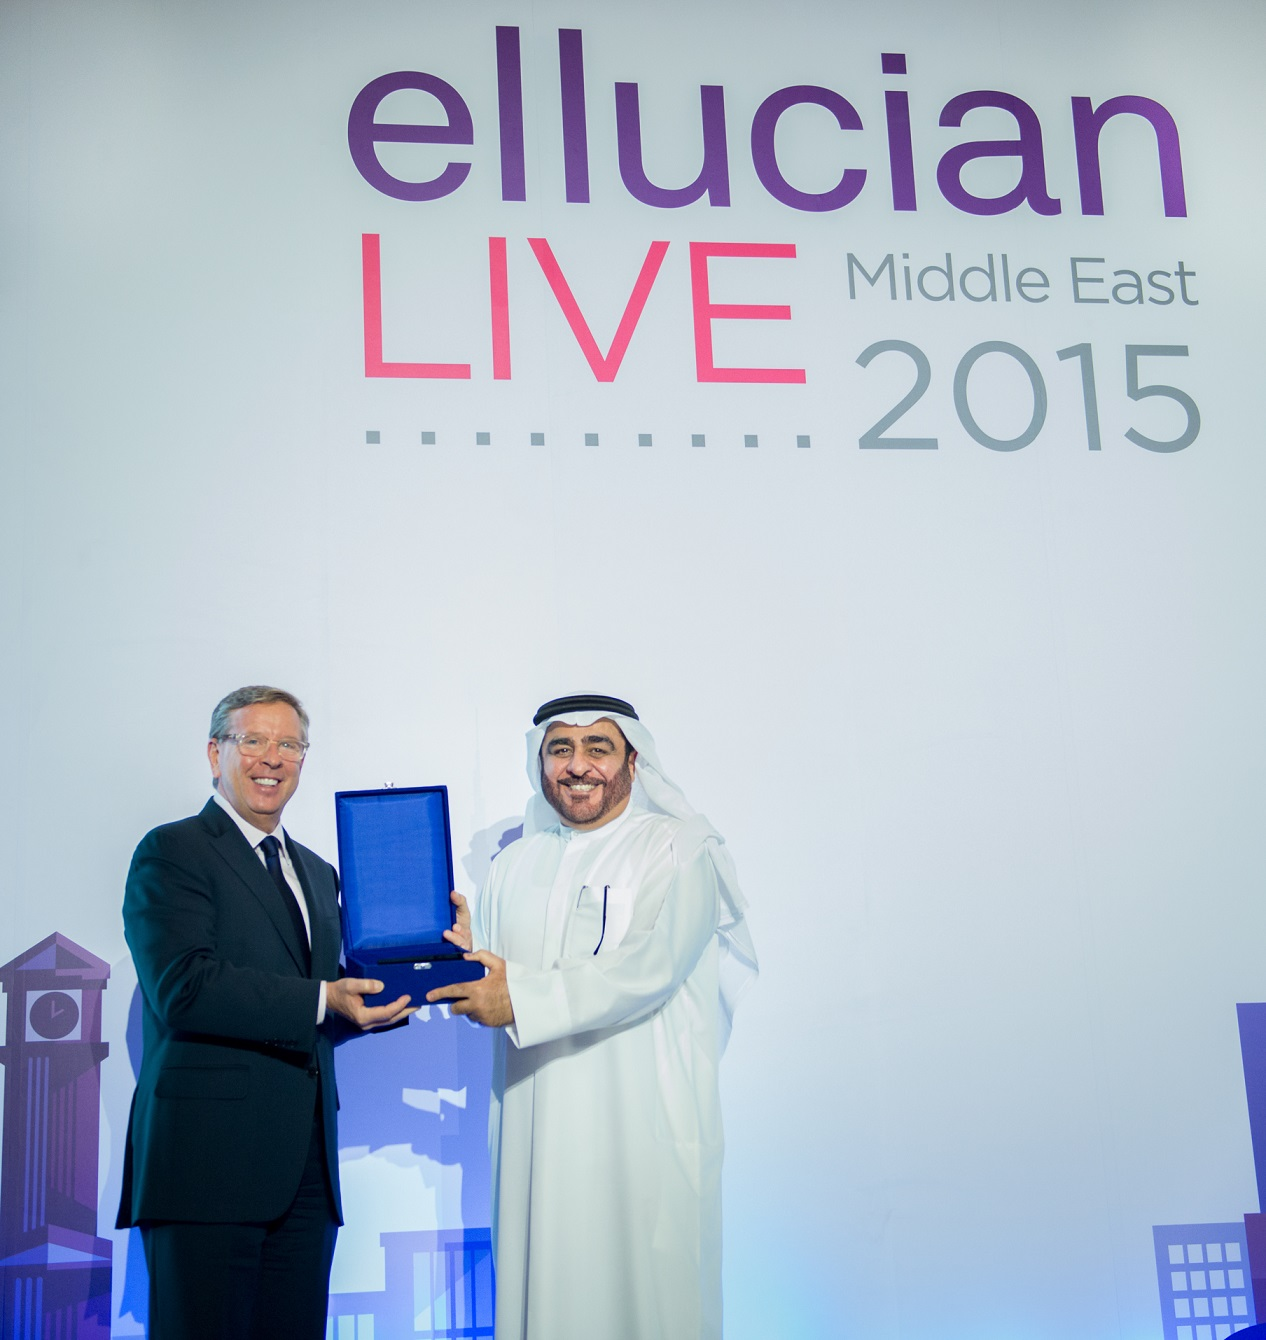 HBMSU first institution to ever receive the 'Extraordinary